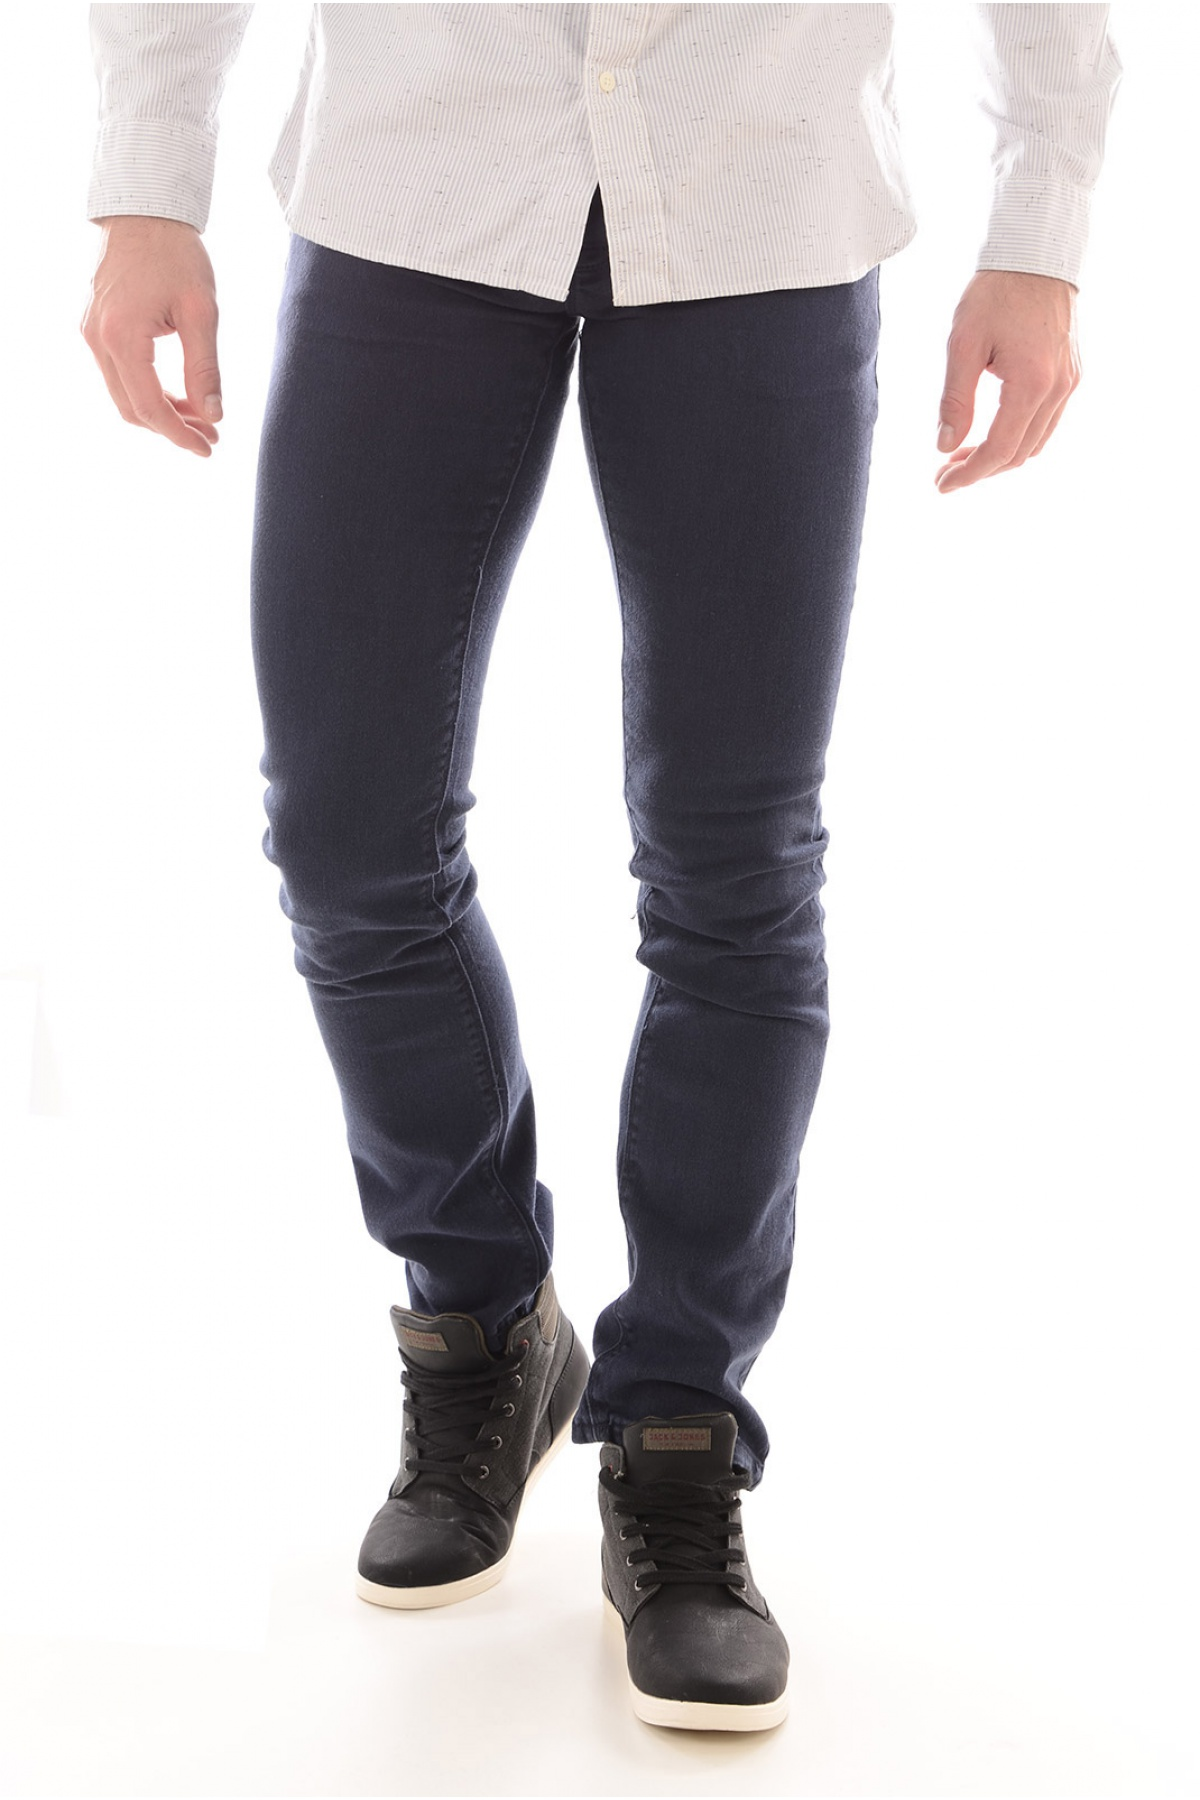 Jean Slim Stretch Couleur Dentor - Biaggio Jeans